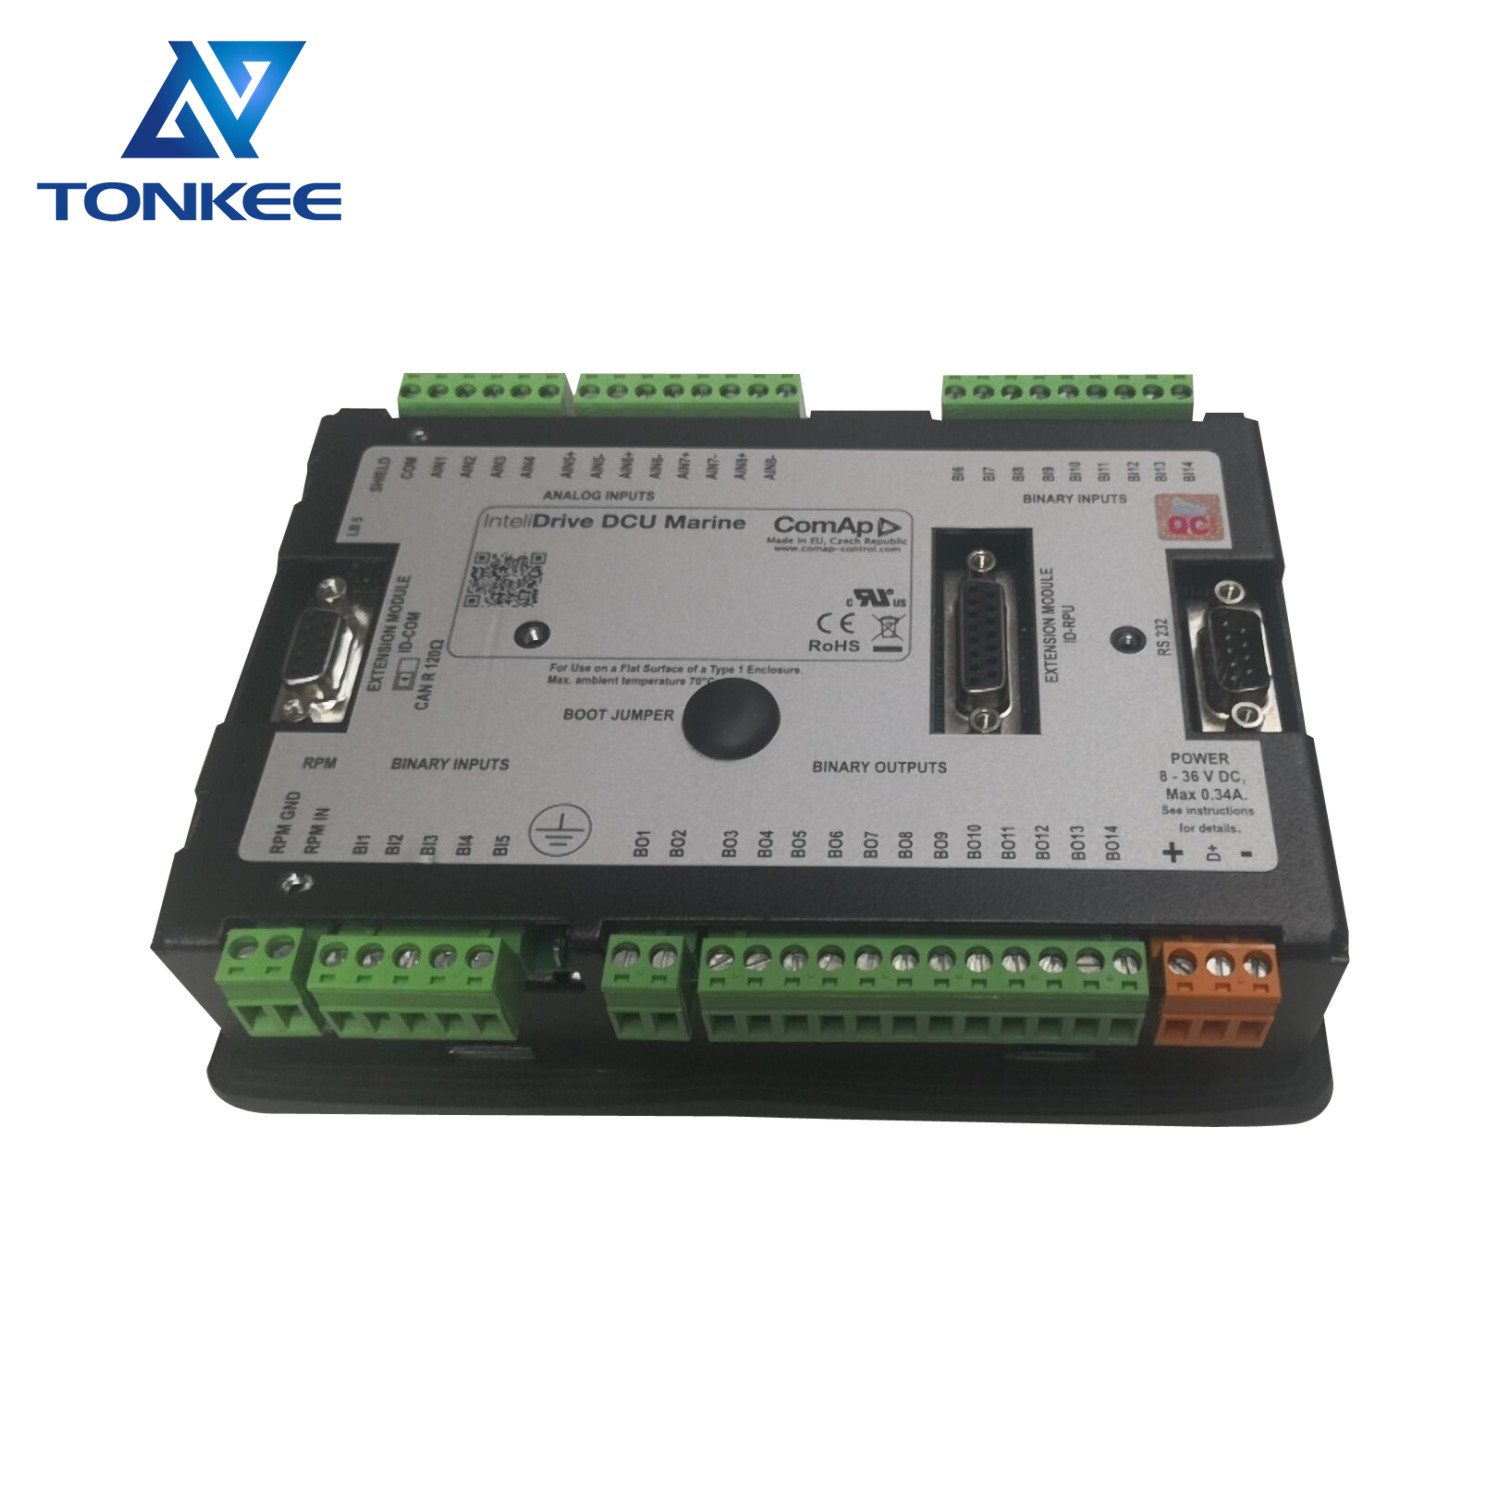 D13B-E D16C-D D9A D12D control unit 3818237 3818237P04 ID-MCU monitor control unit diesel engine suitable for VOLVO excavation